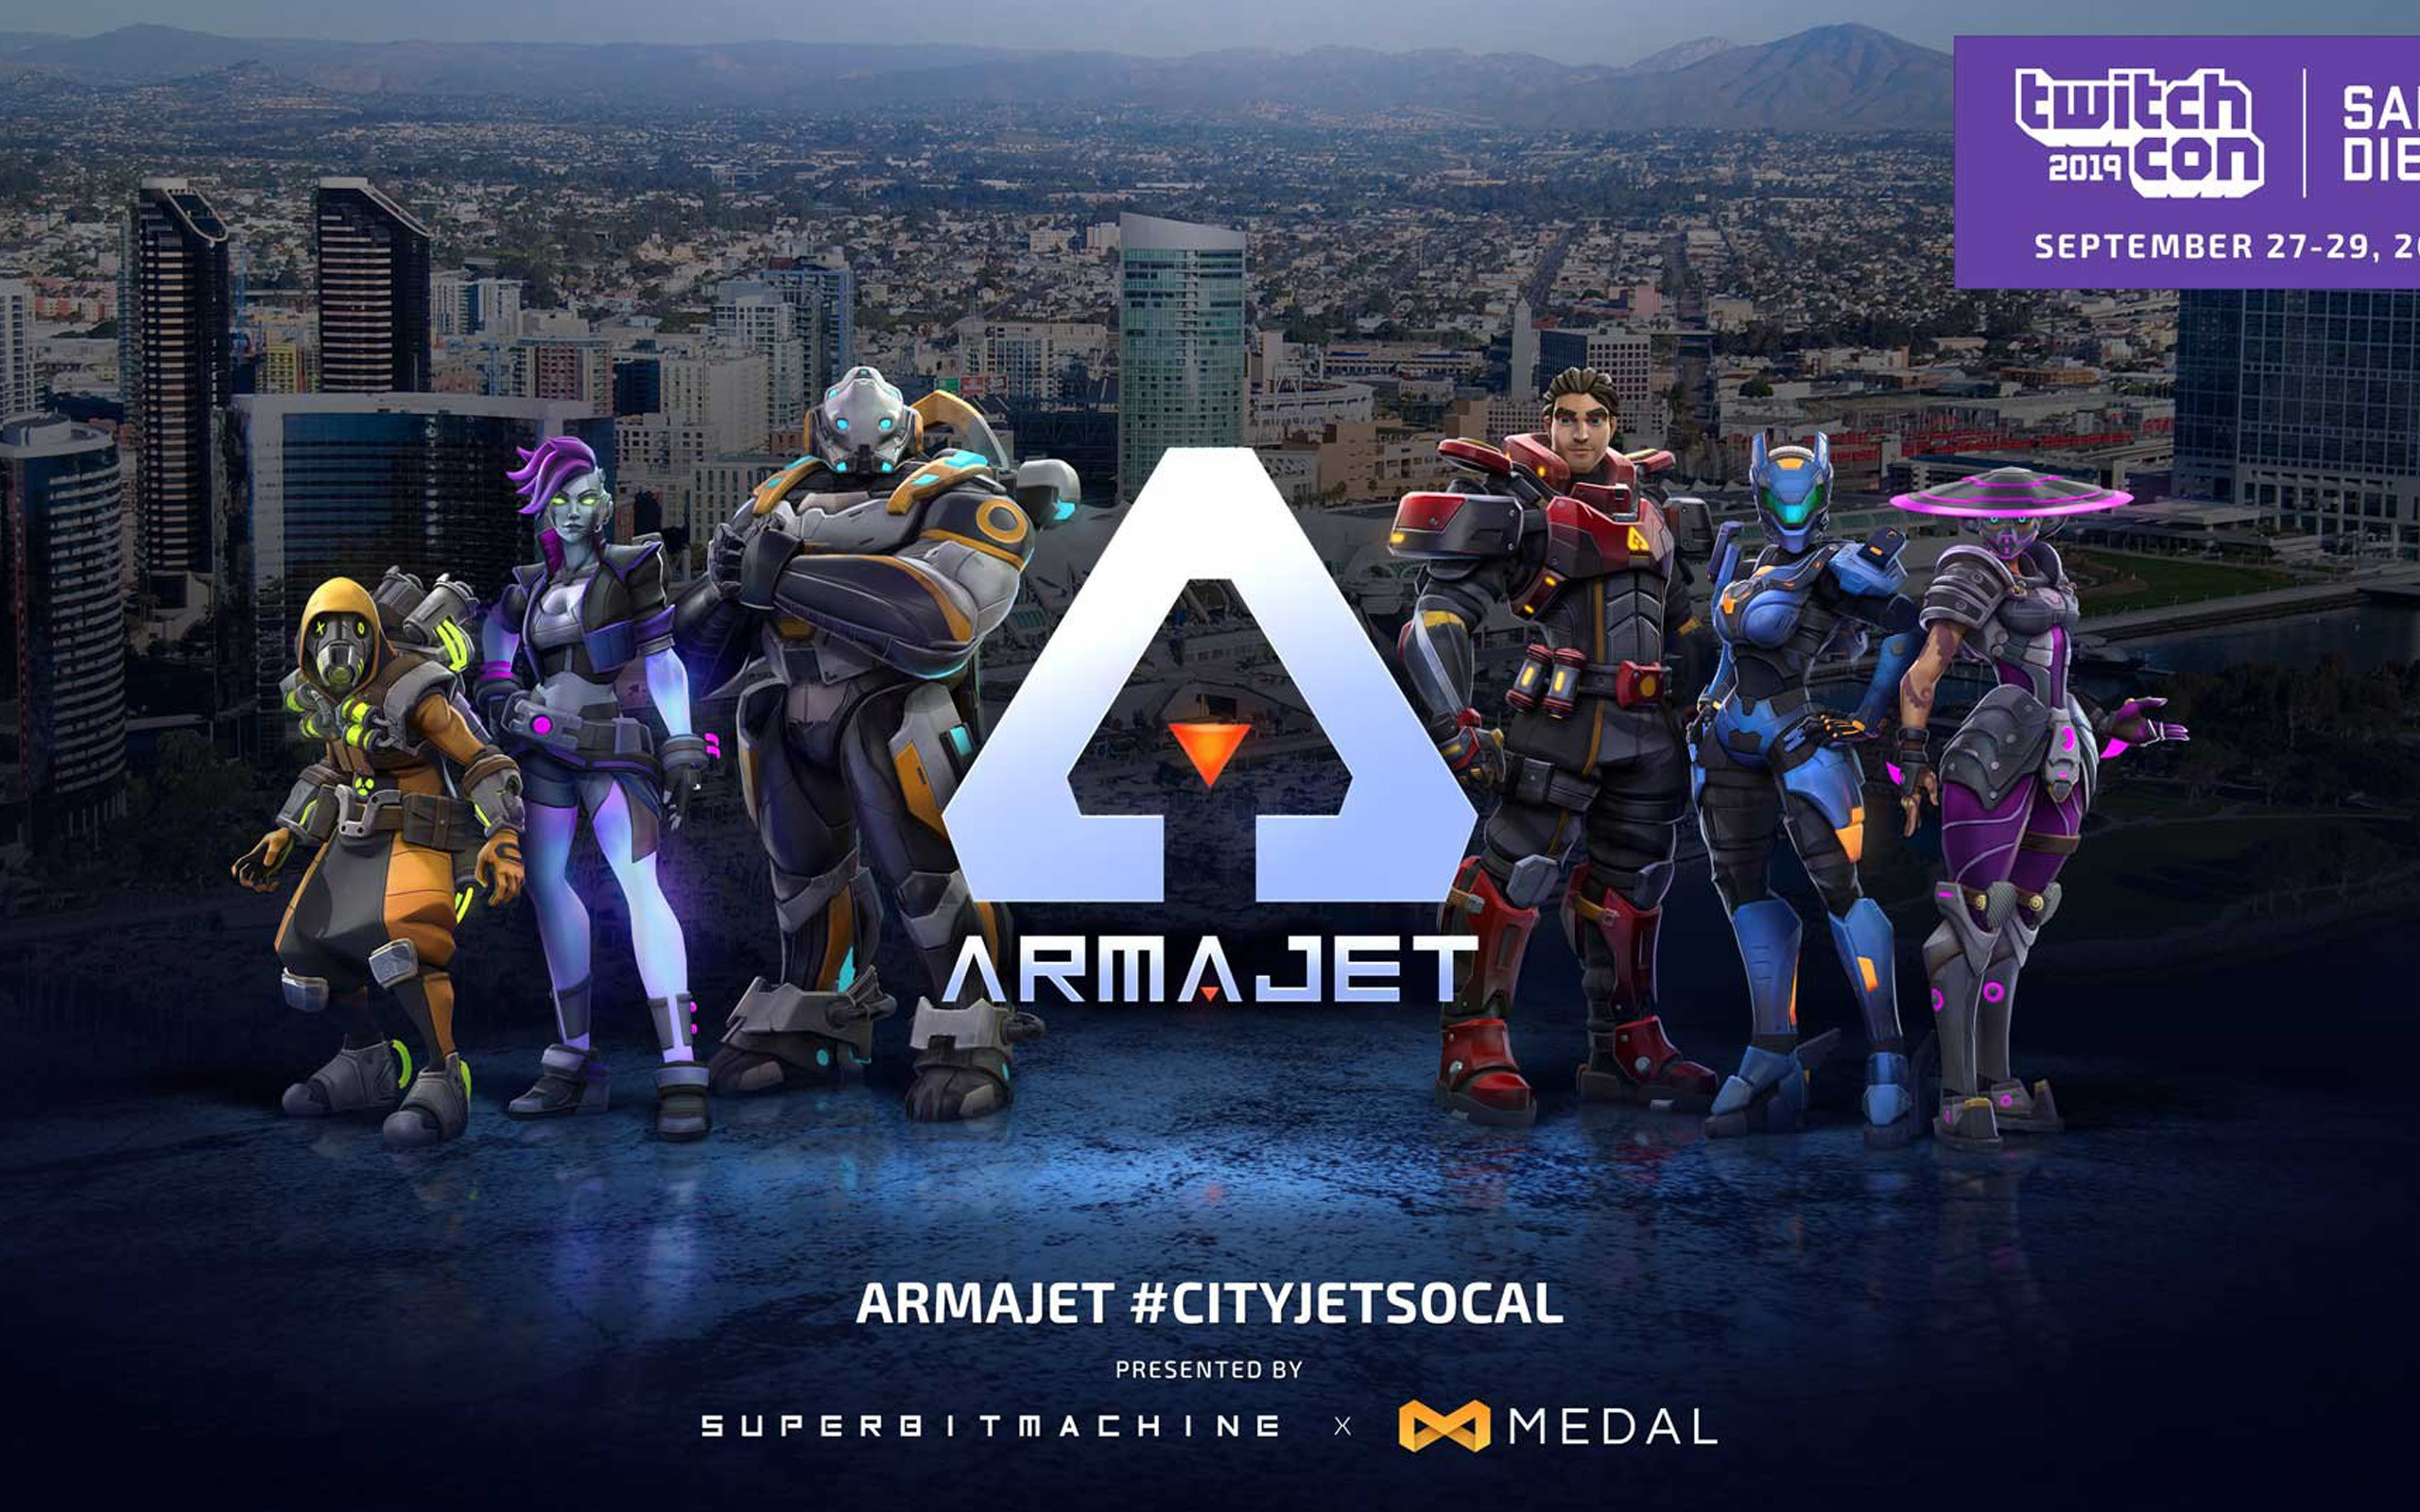 Promo art for ARMAJET. Can find some elements of my design on the 3rd character to the left :) All credit goes to the amazing artists with Super Bit Machine.